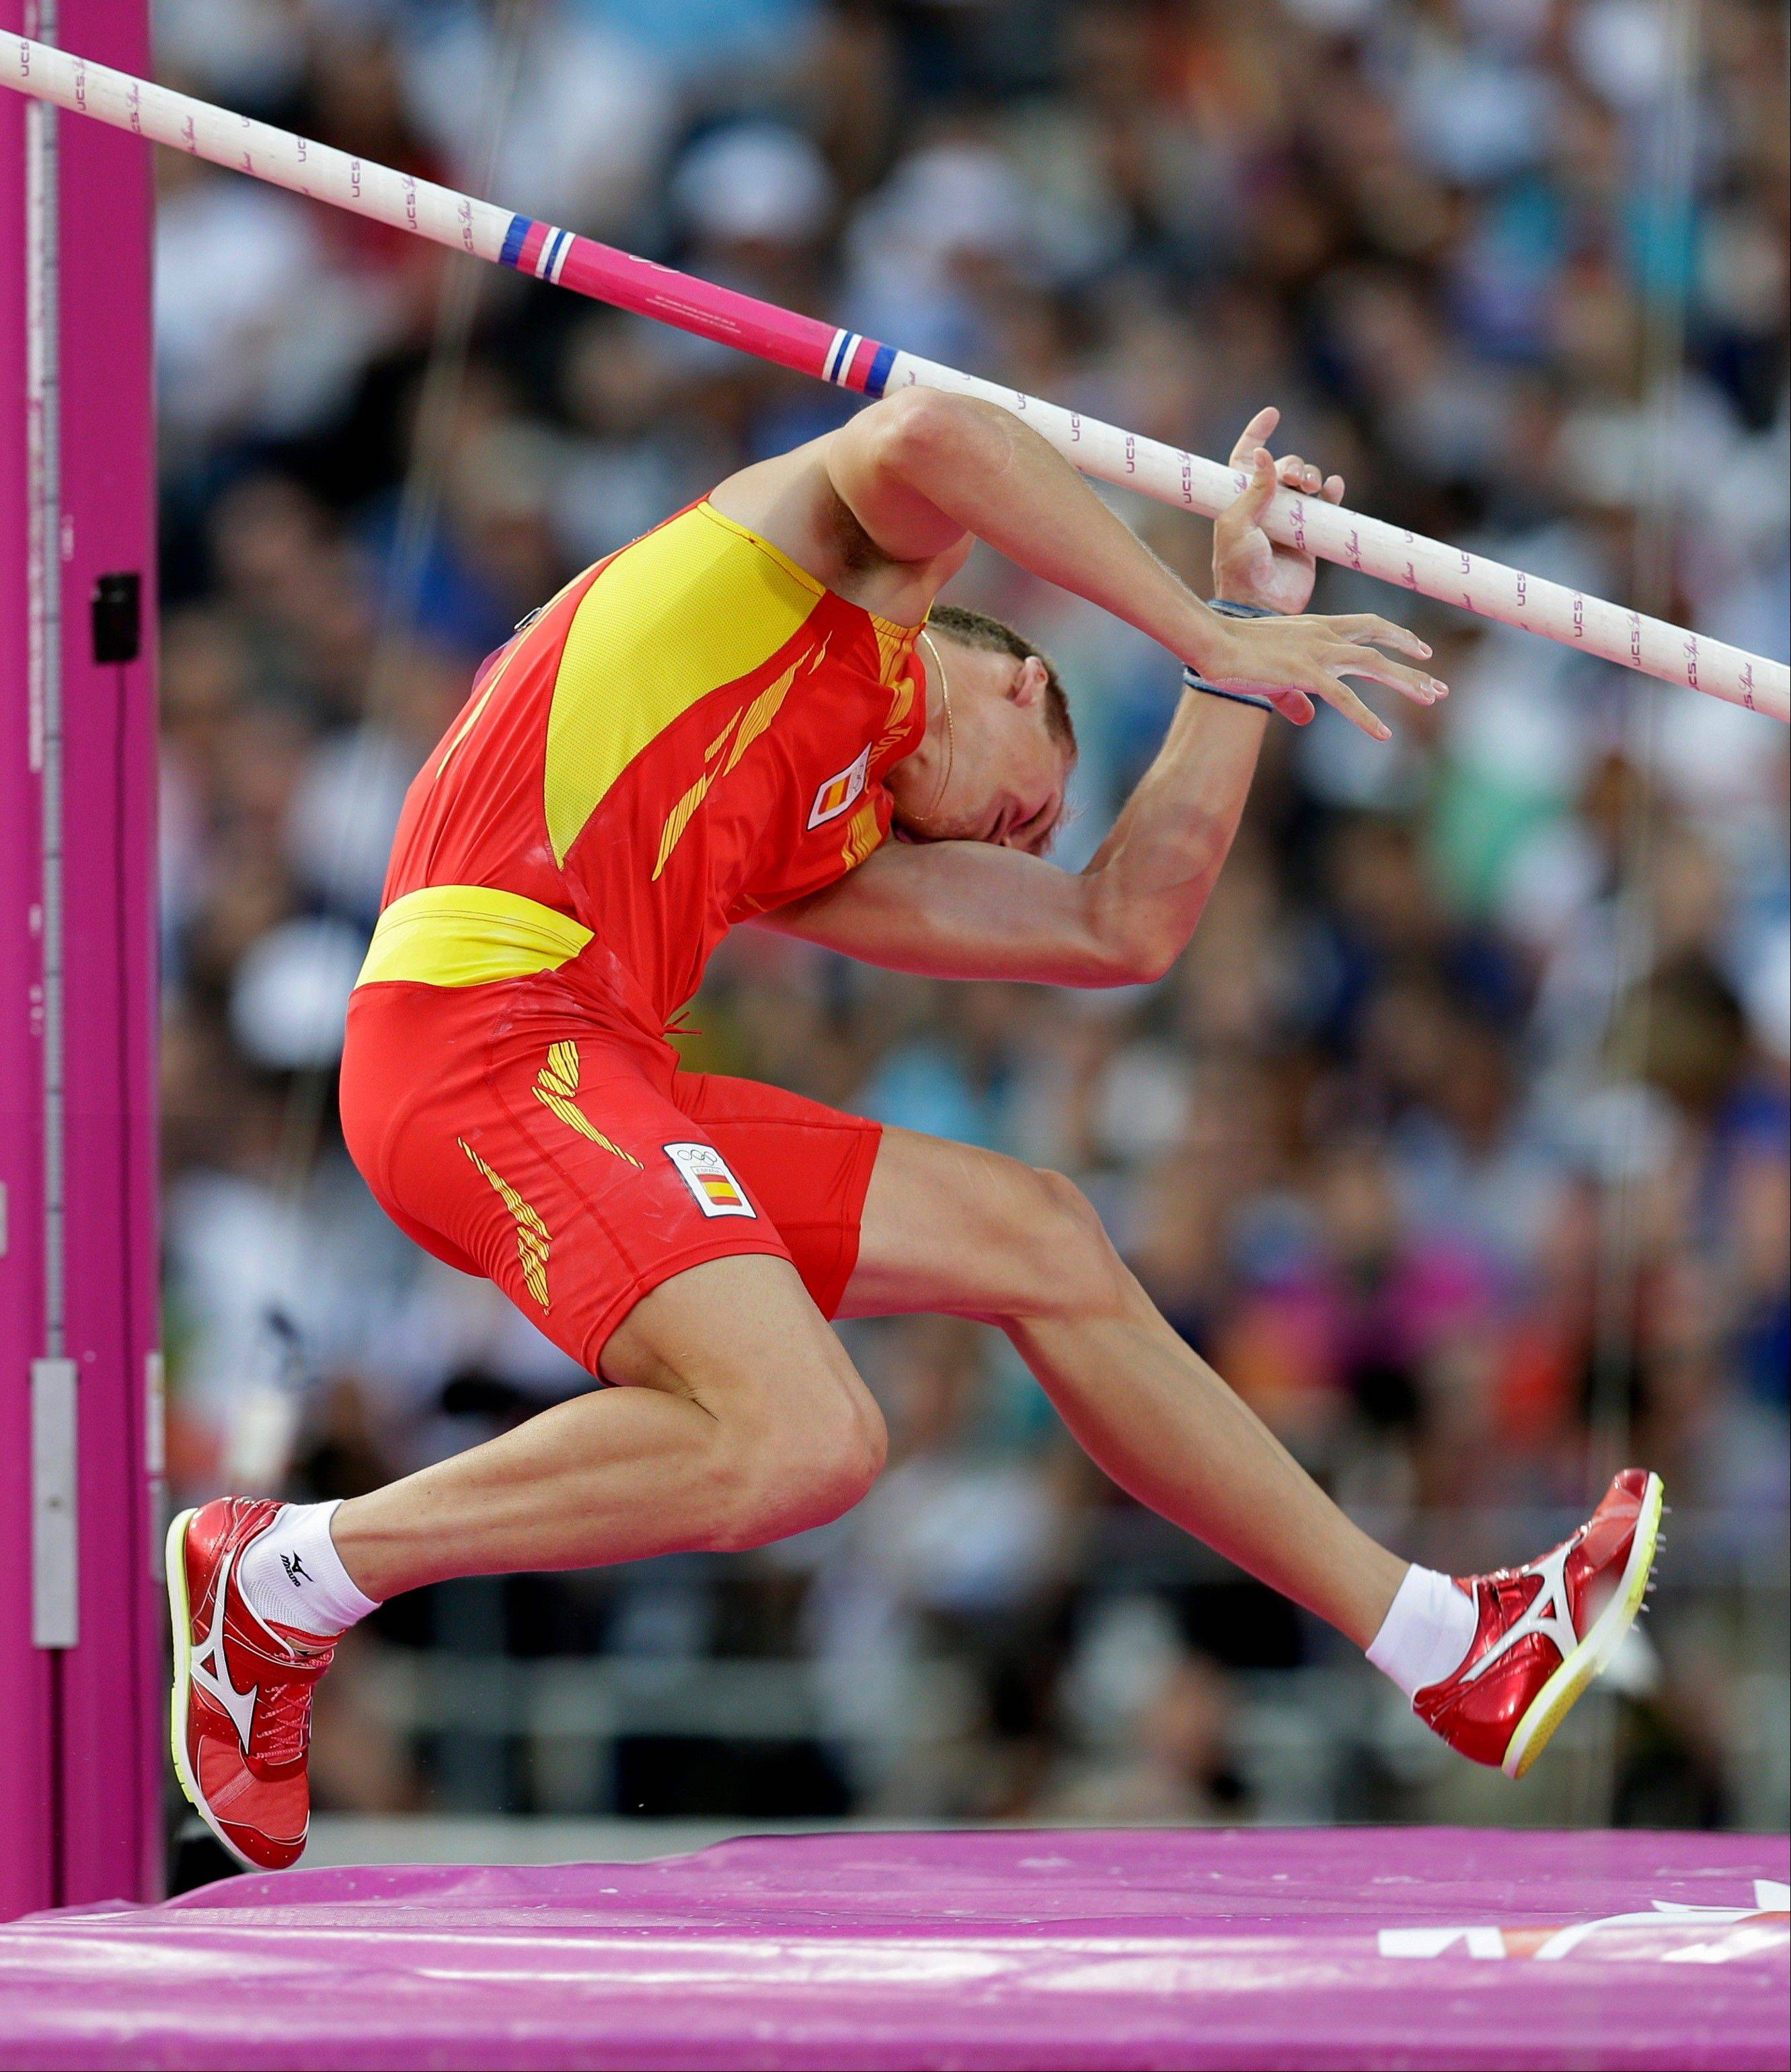 Spain's Igor Bychkov is hit by his pole as he fails to launch himself in the men's pole vault final during the athletics in the Olympic Stadium at the 2012 Summer Olympics, London, Friday, Aug. 10, 2012.